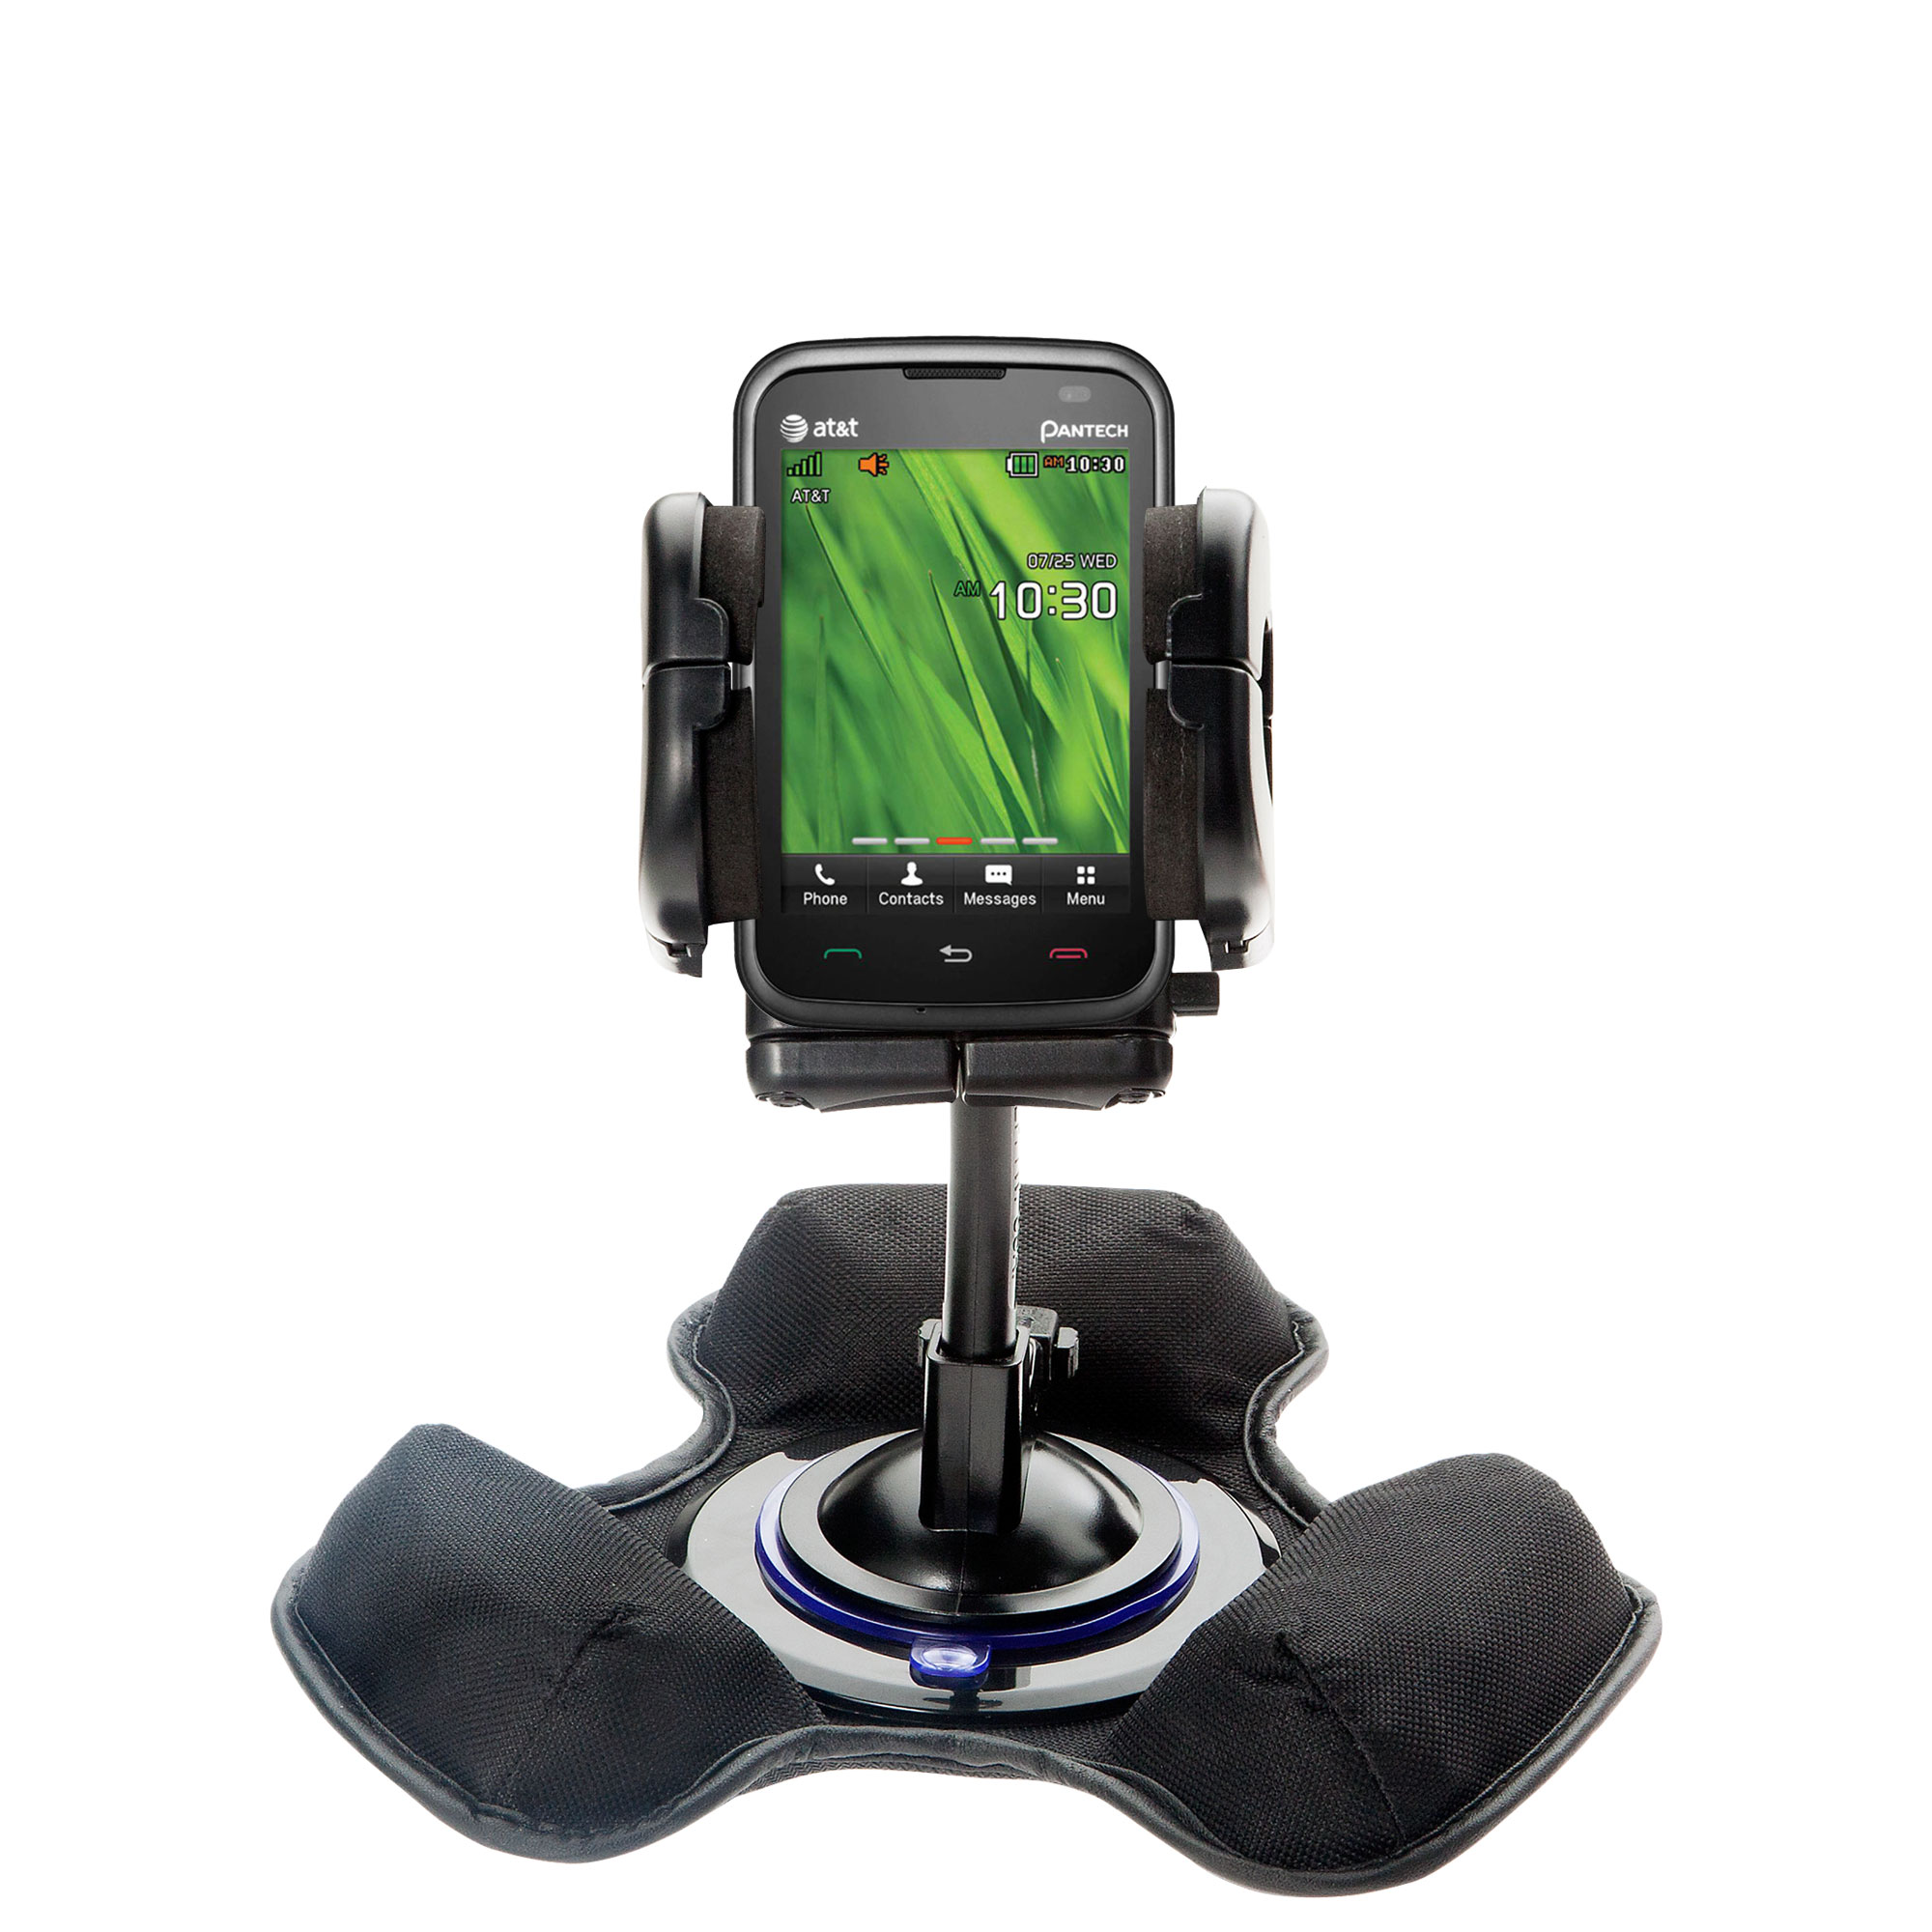 Car / Truck Vehicle Holder Mounting System for Pantech Renue Includes Unique Flexible Windshield Suction and Universal Dashboard Mount Options